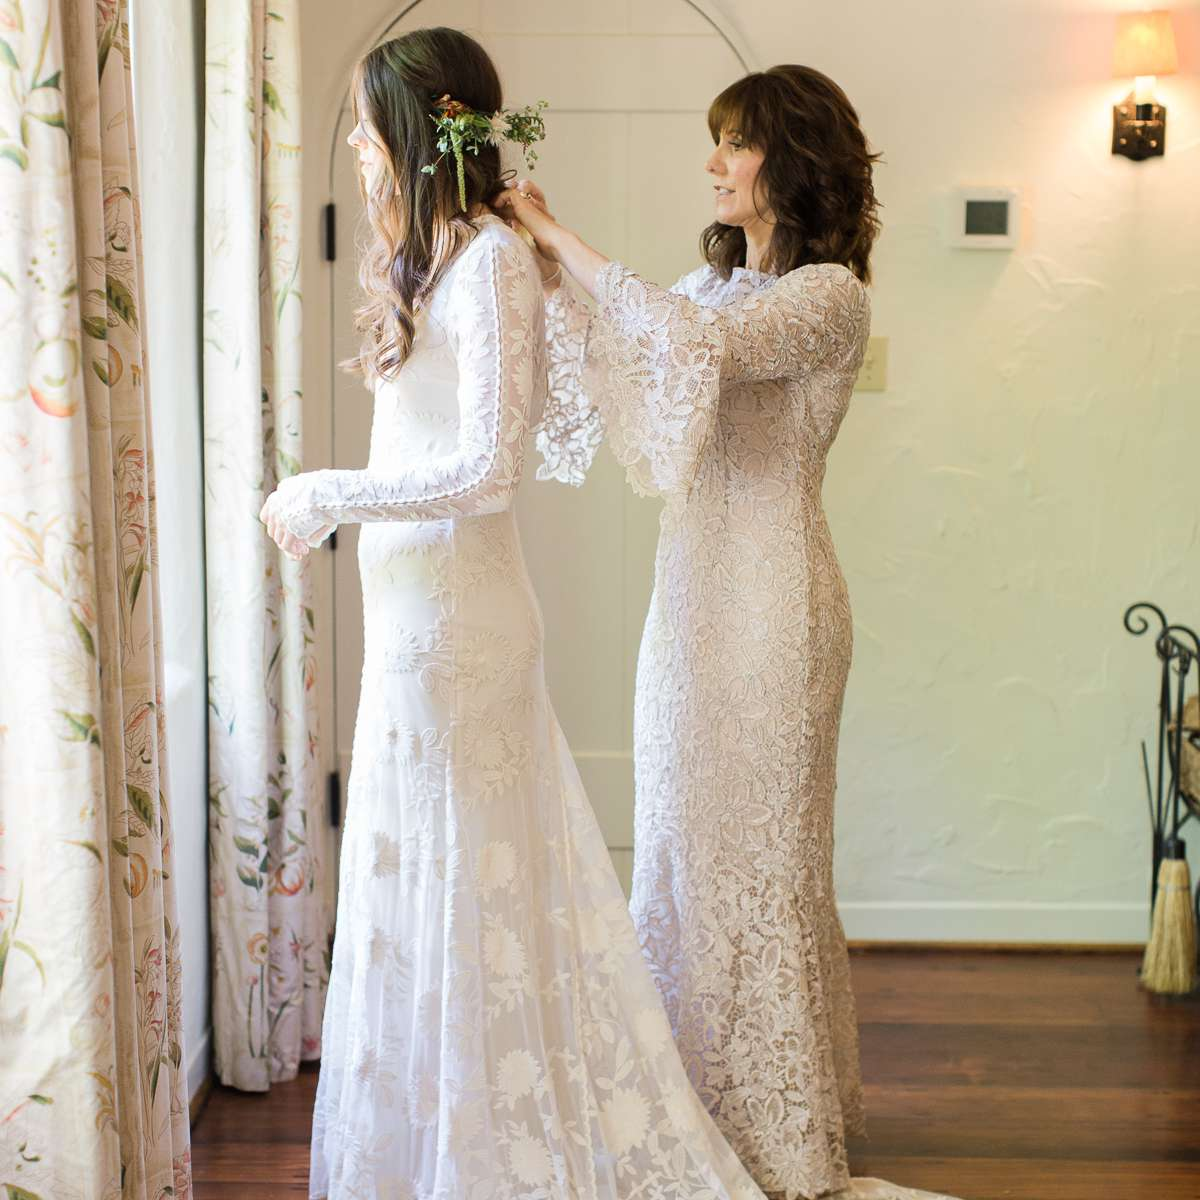 Bride getting ready with mother of the bride